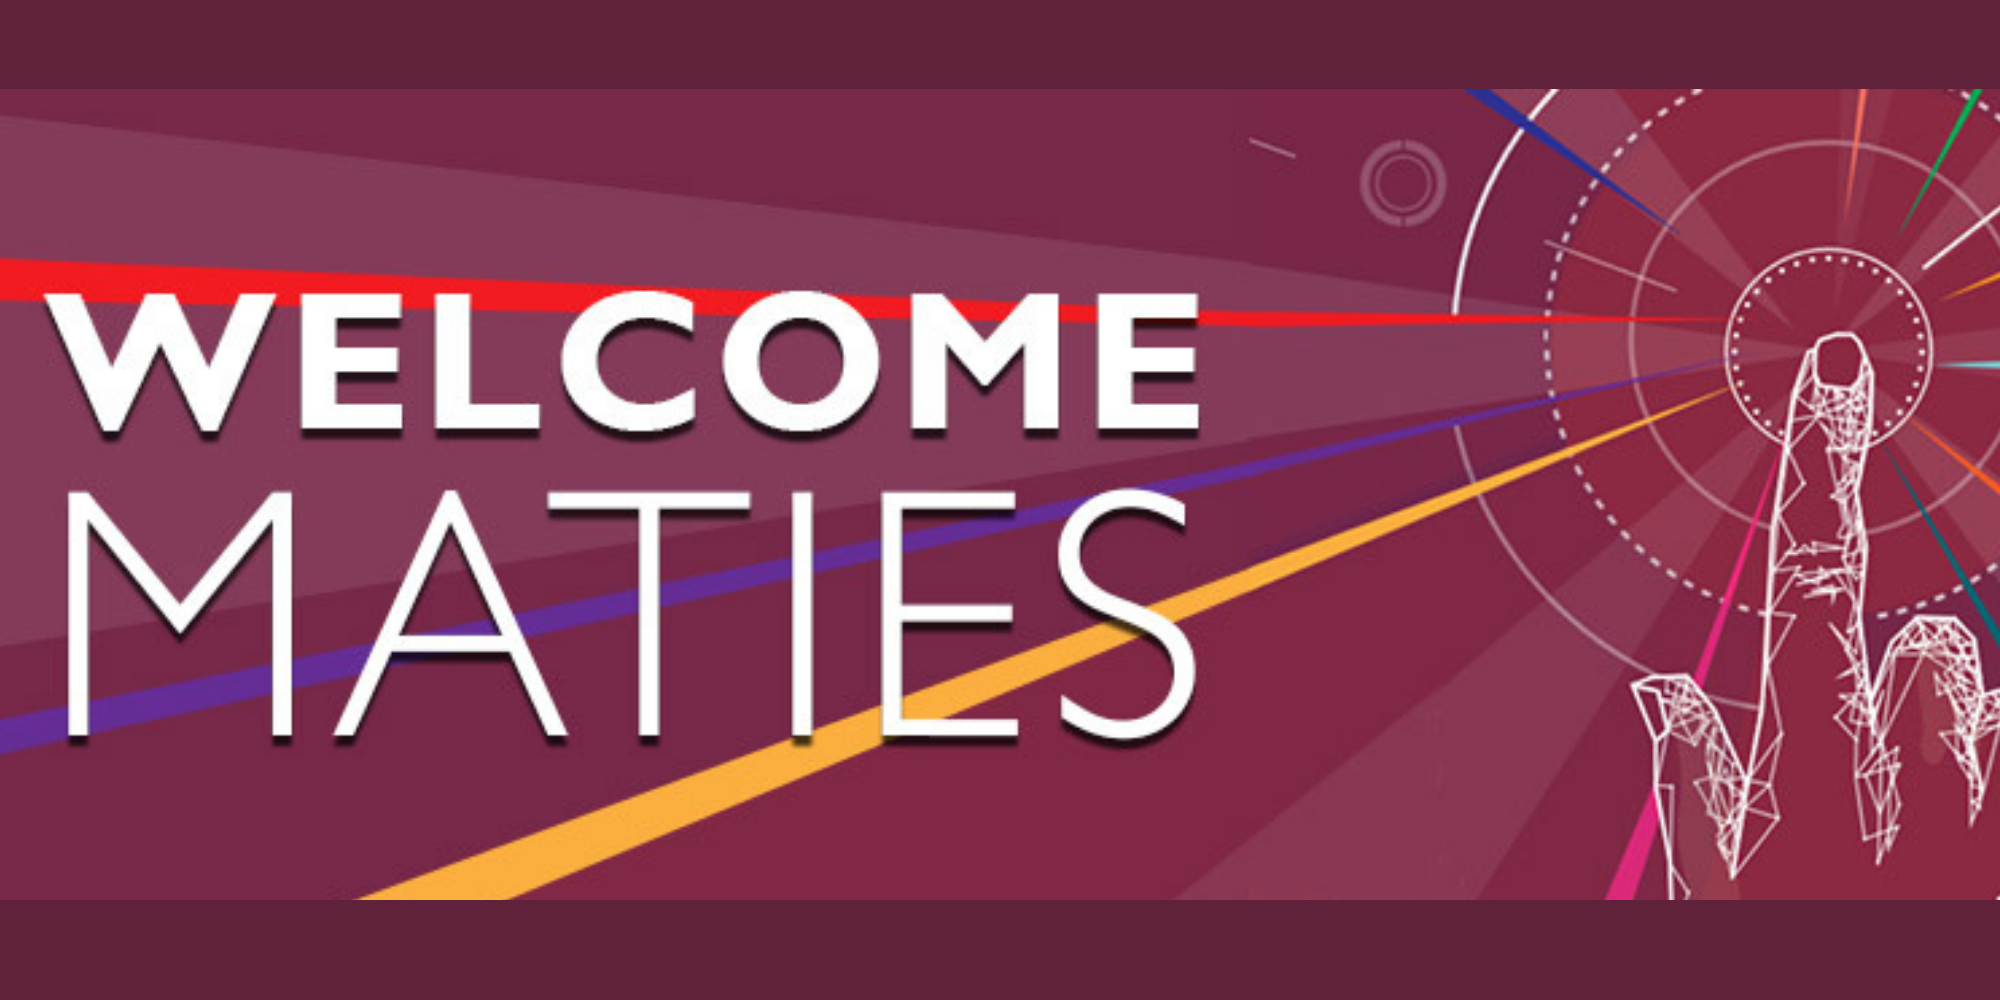 Welcome Maties image.png